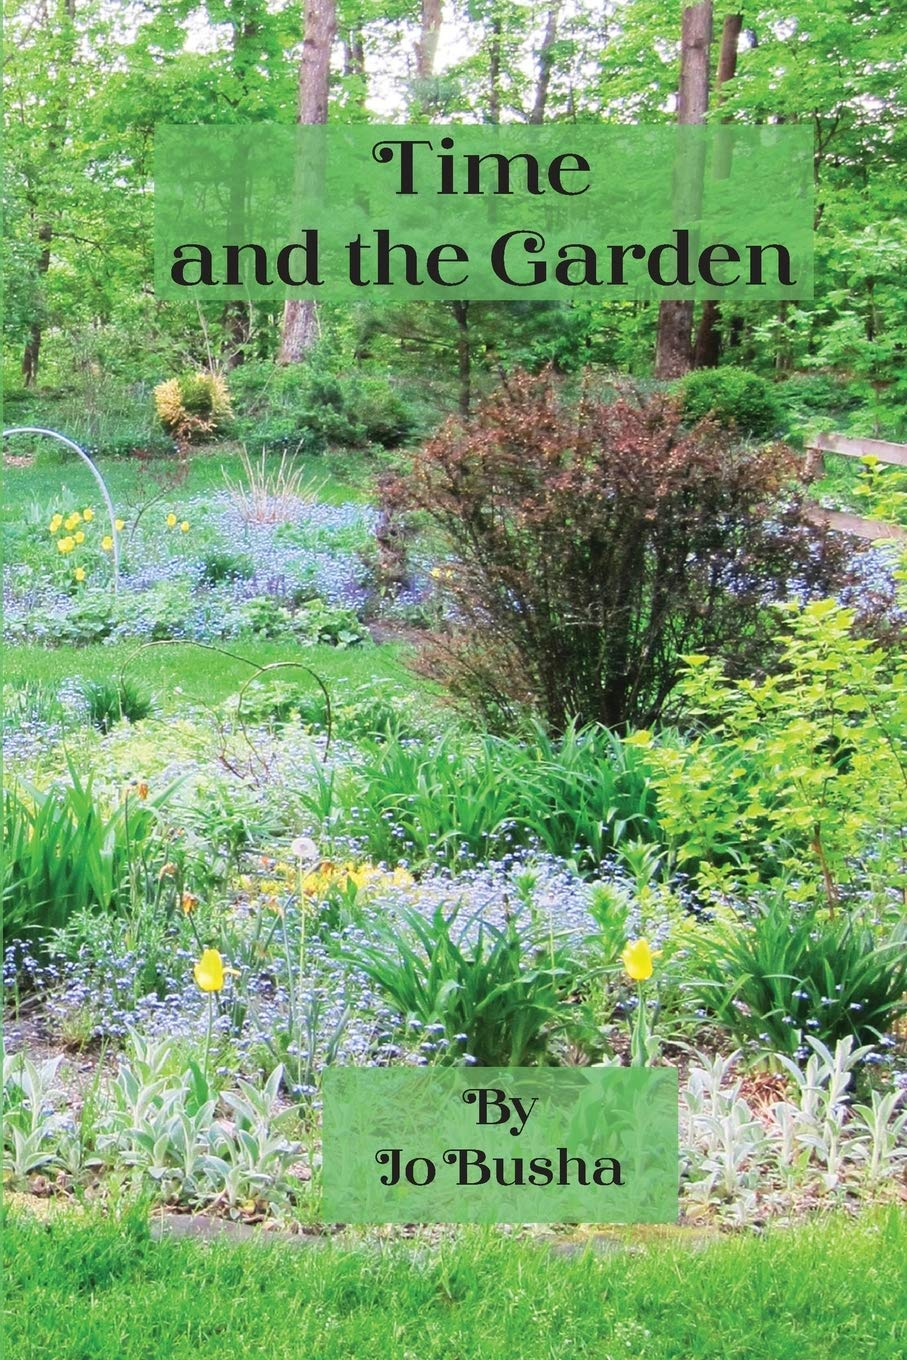 a book cover with a photo of a lush, Vermont garden